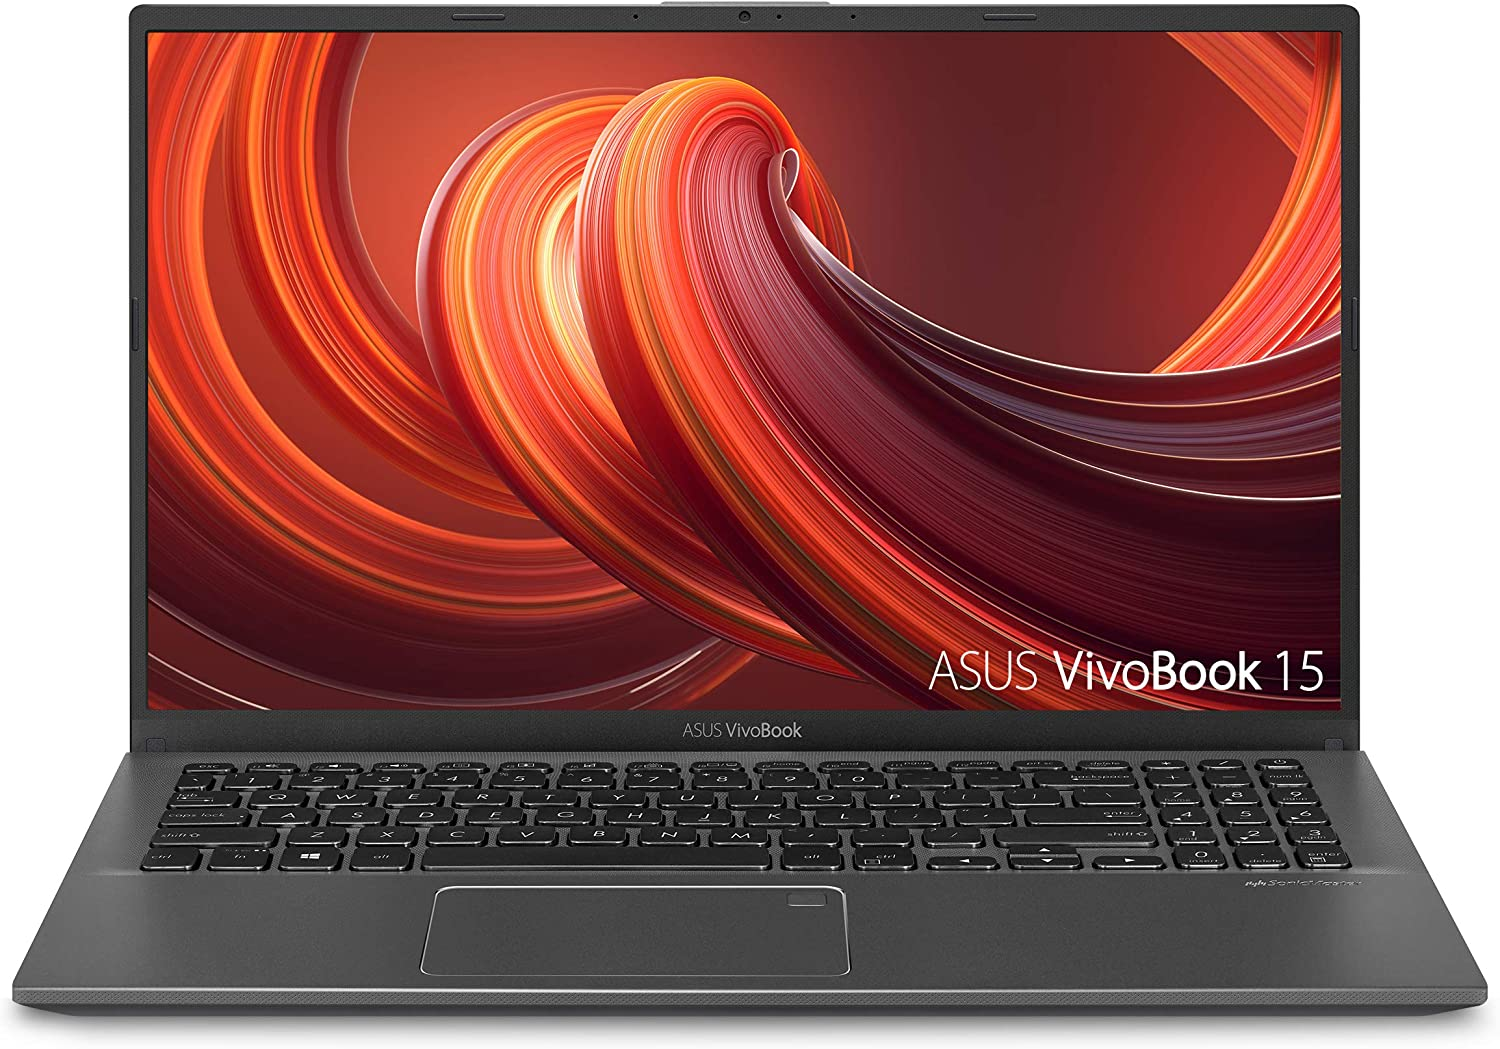 Asus VivoBook 15 – Thin & Light Laptop